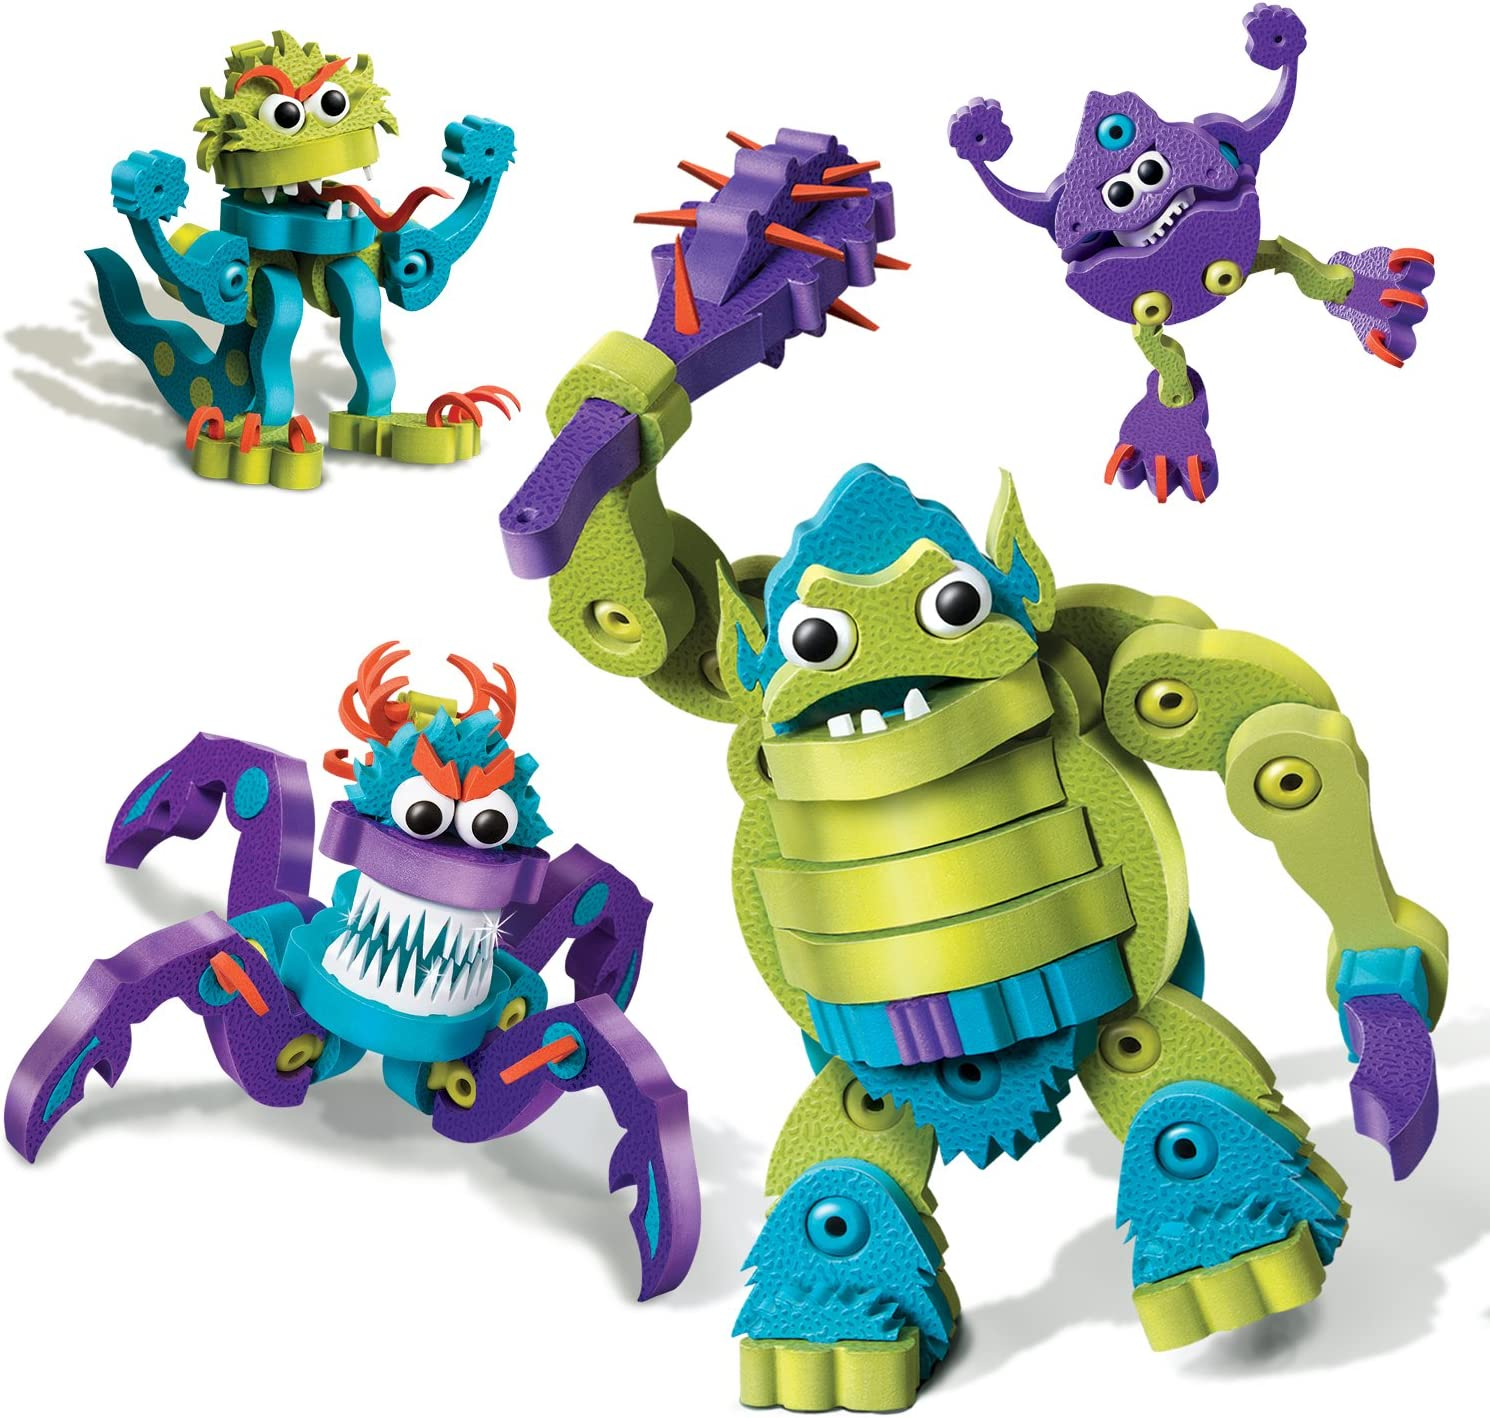 Bloco Toys Ogre and Monsters Building Kit by Bloco Toys inc.